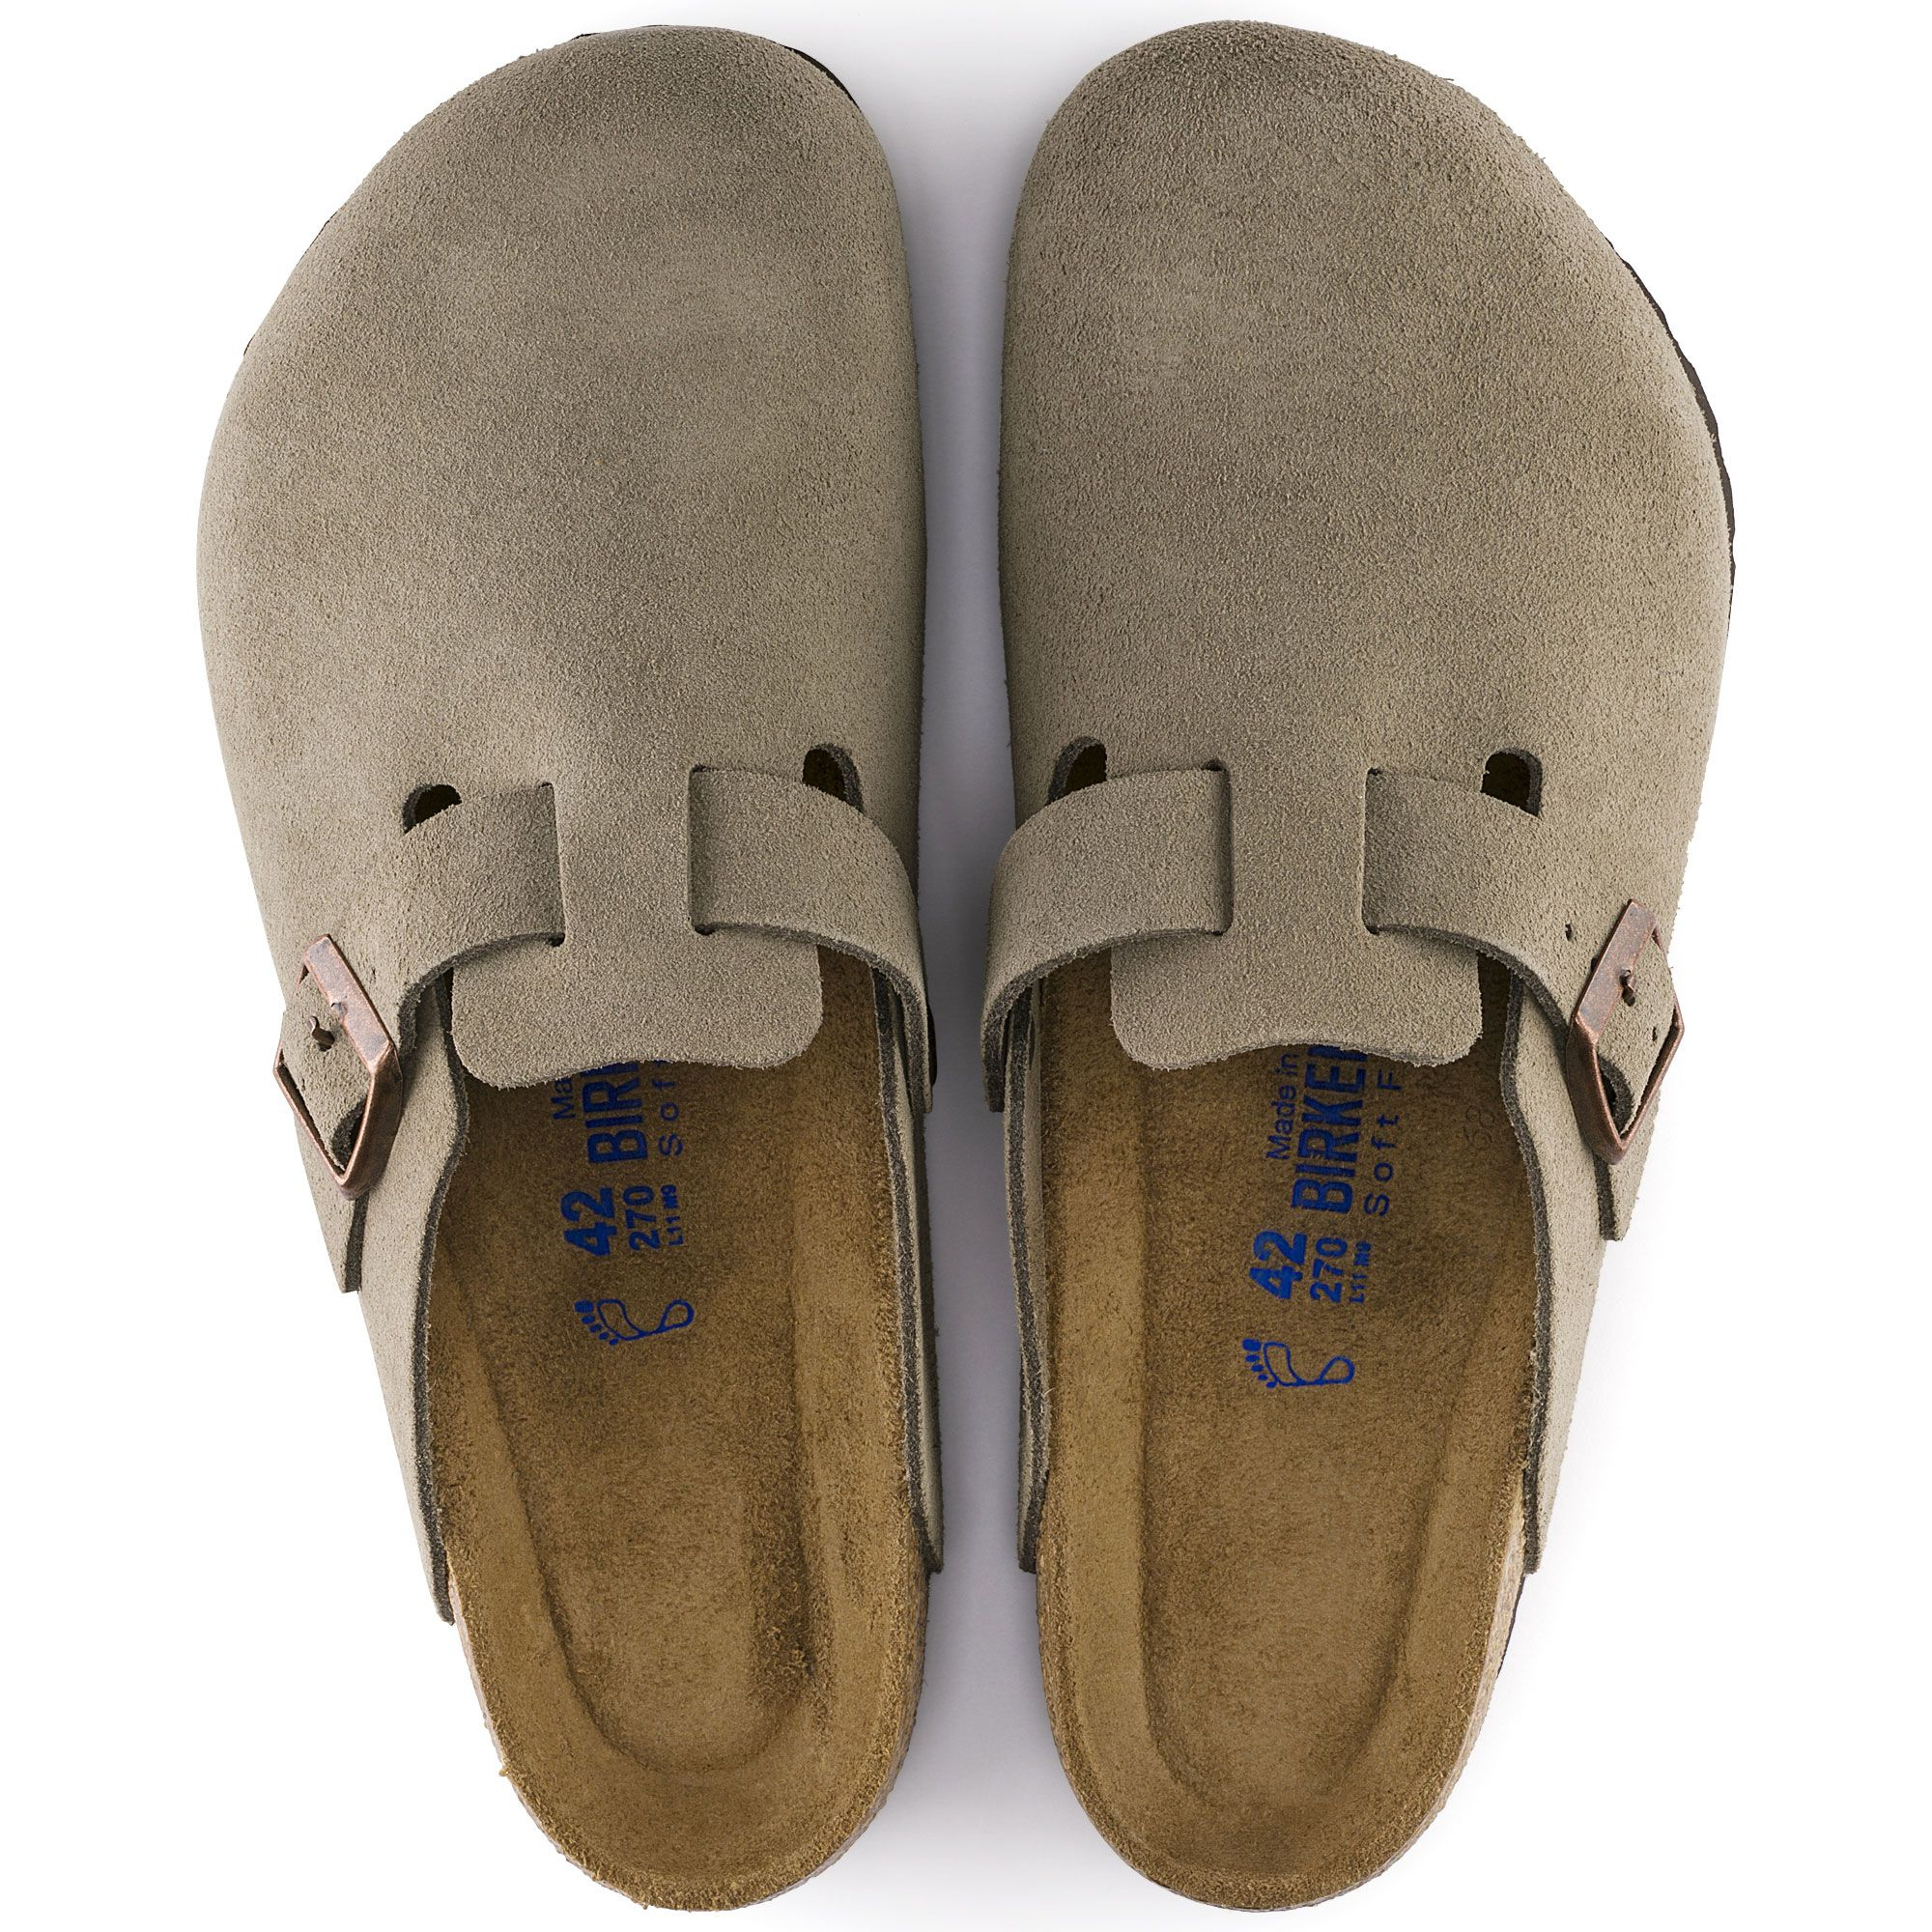 99392d5423f9 Boston Soft Footbed Taupe Suede. Boston Soft Footbed Taupe Suede  Birkenstock Sandals ...